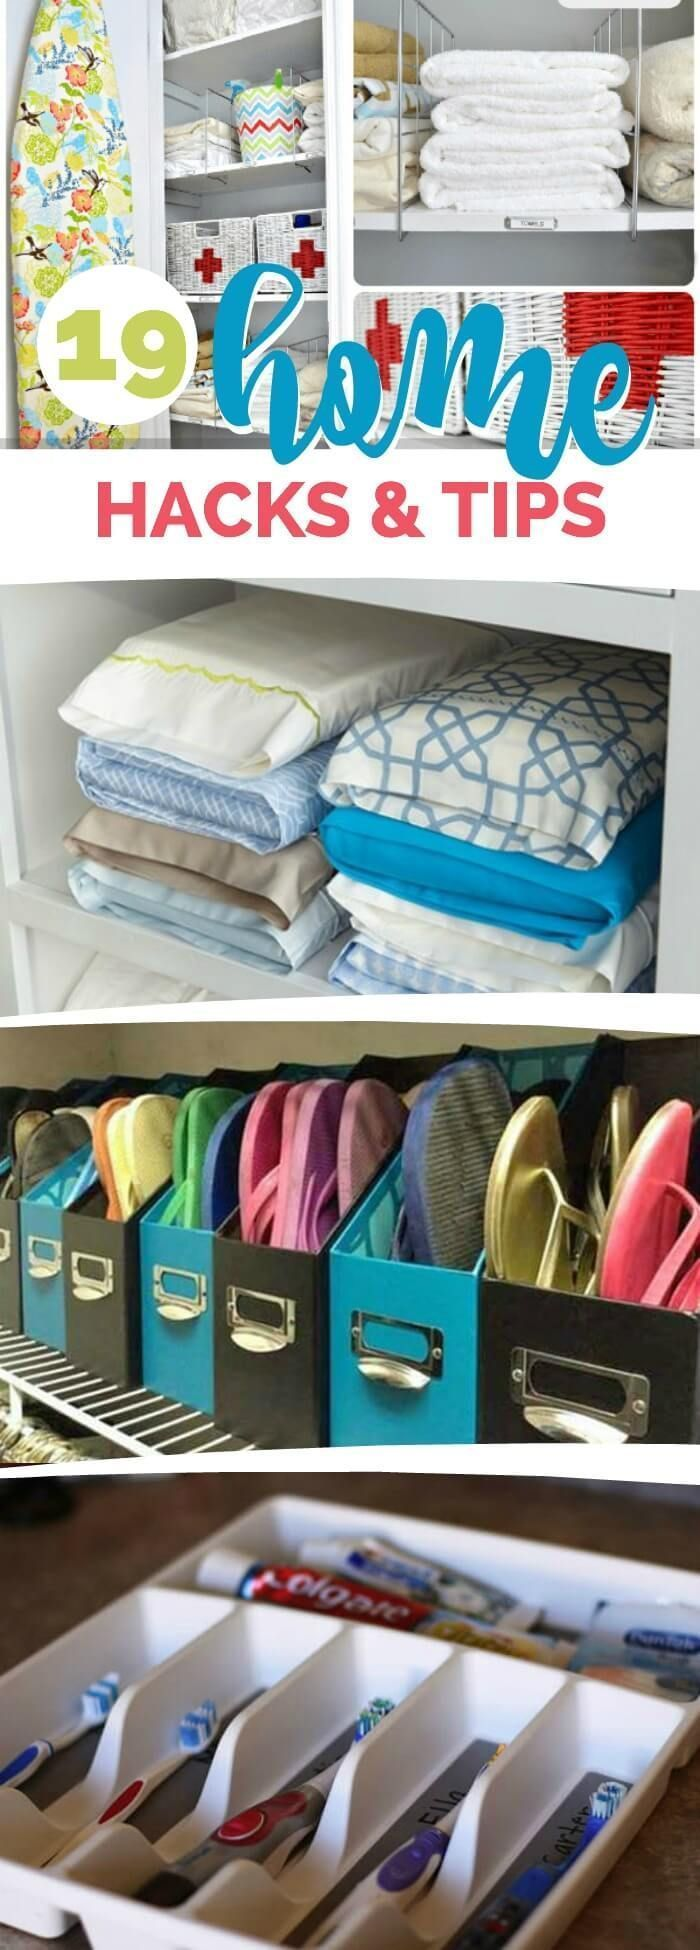 Creative Organization: 19 Home Hacks and Tips to keep it neat and organized. Organization is key for a functional home